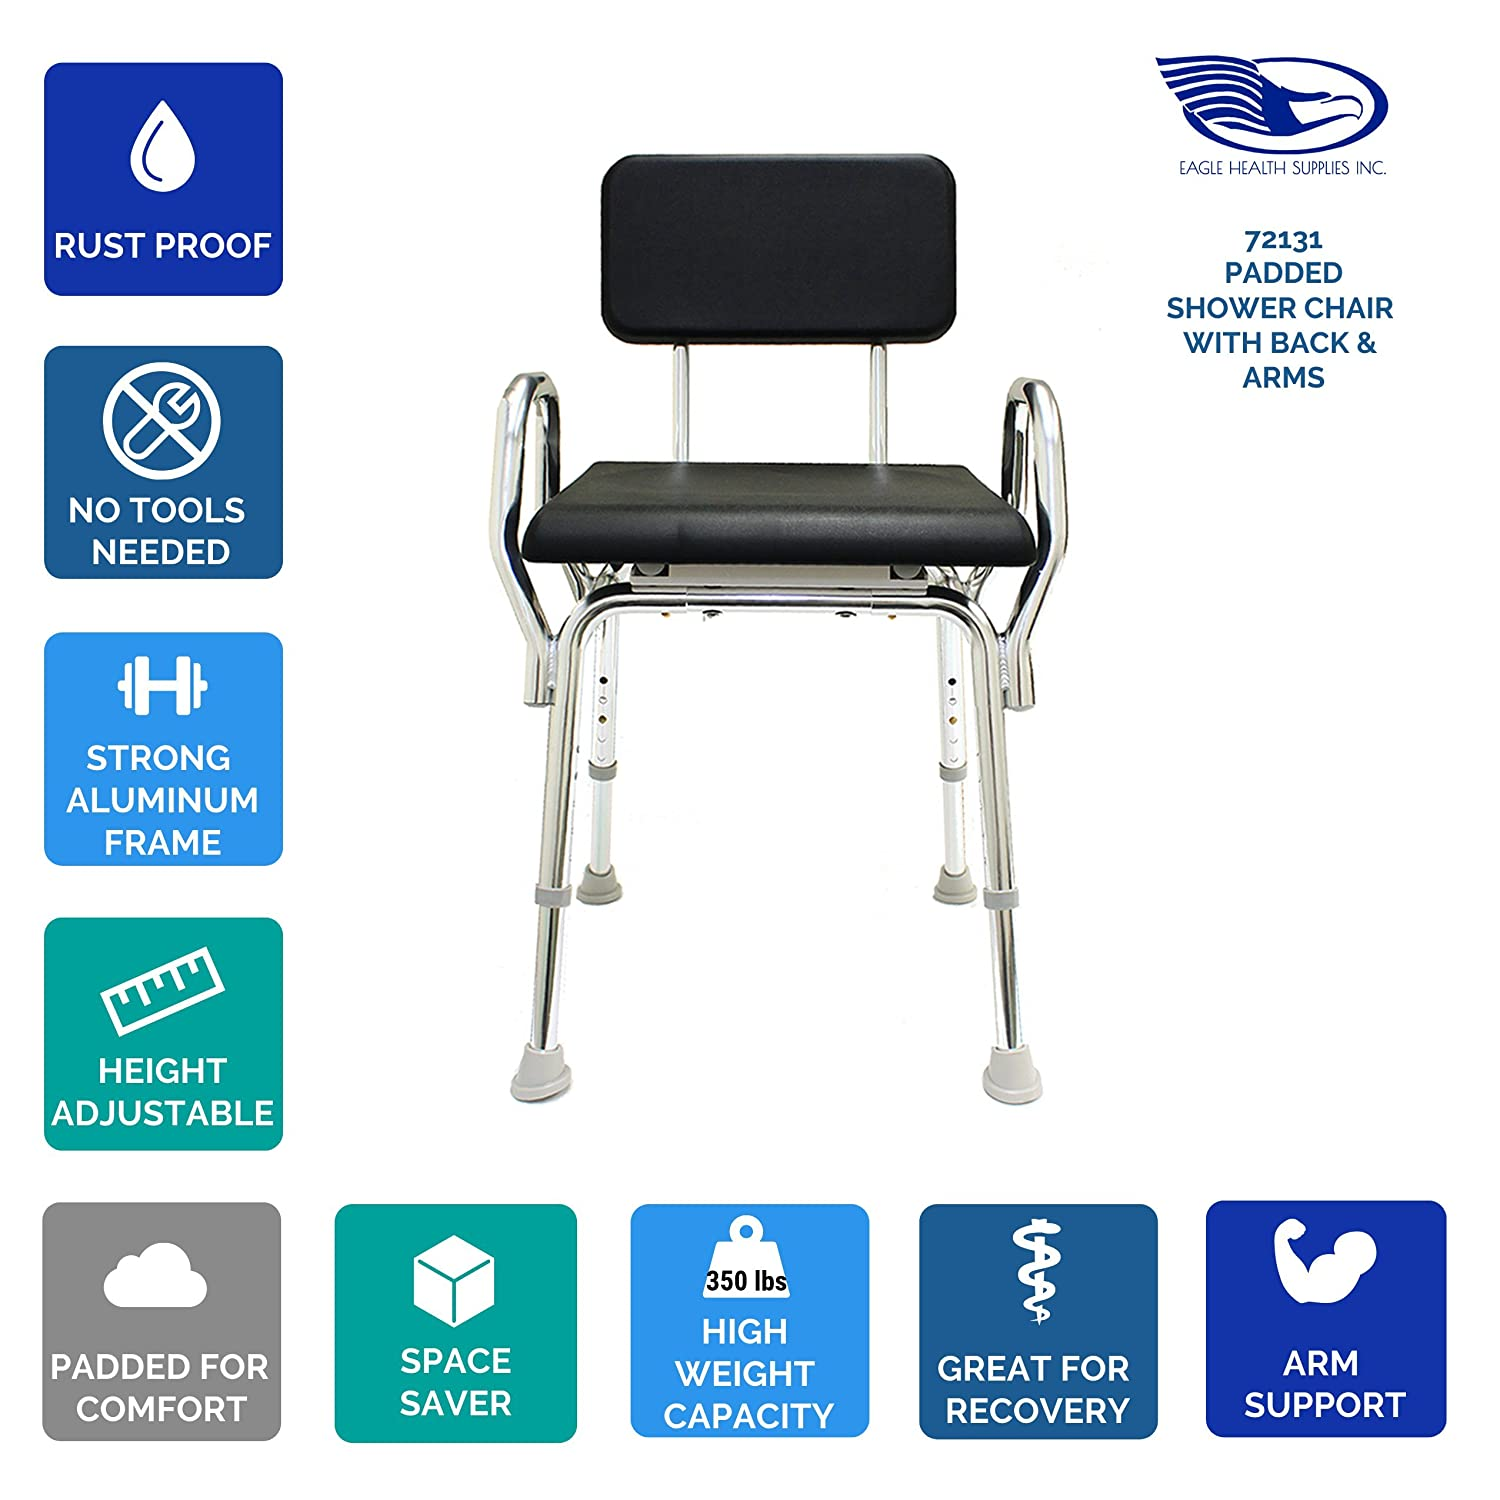 Amazon.com: Padded Shower Chair with Back & Arms (72131) - Bath ...